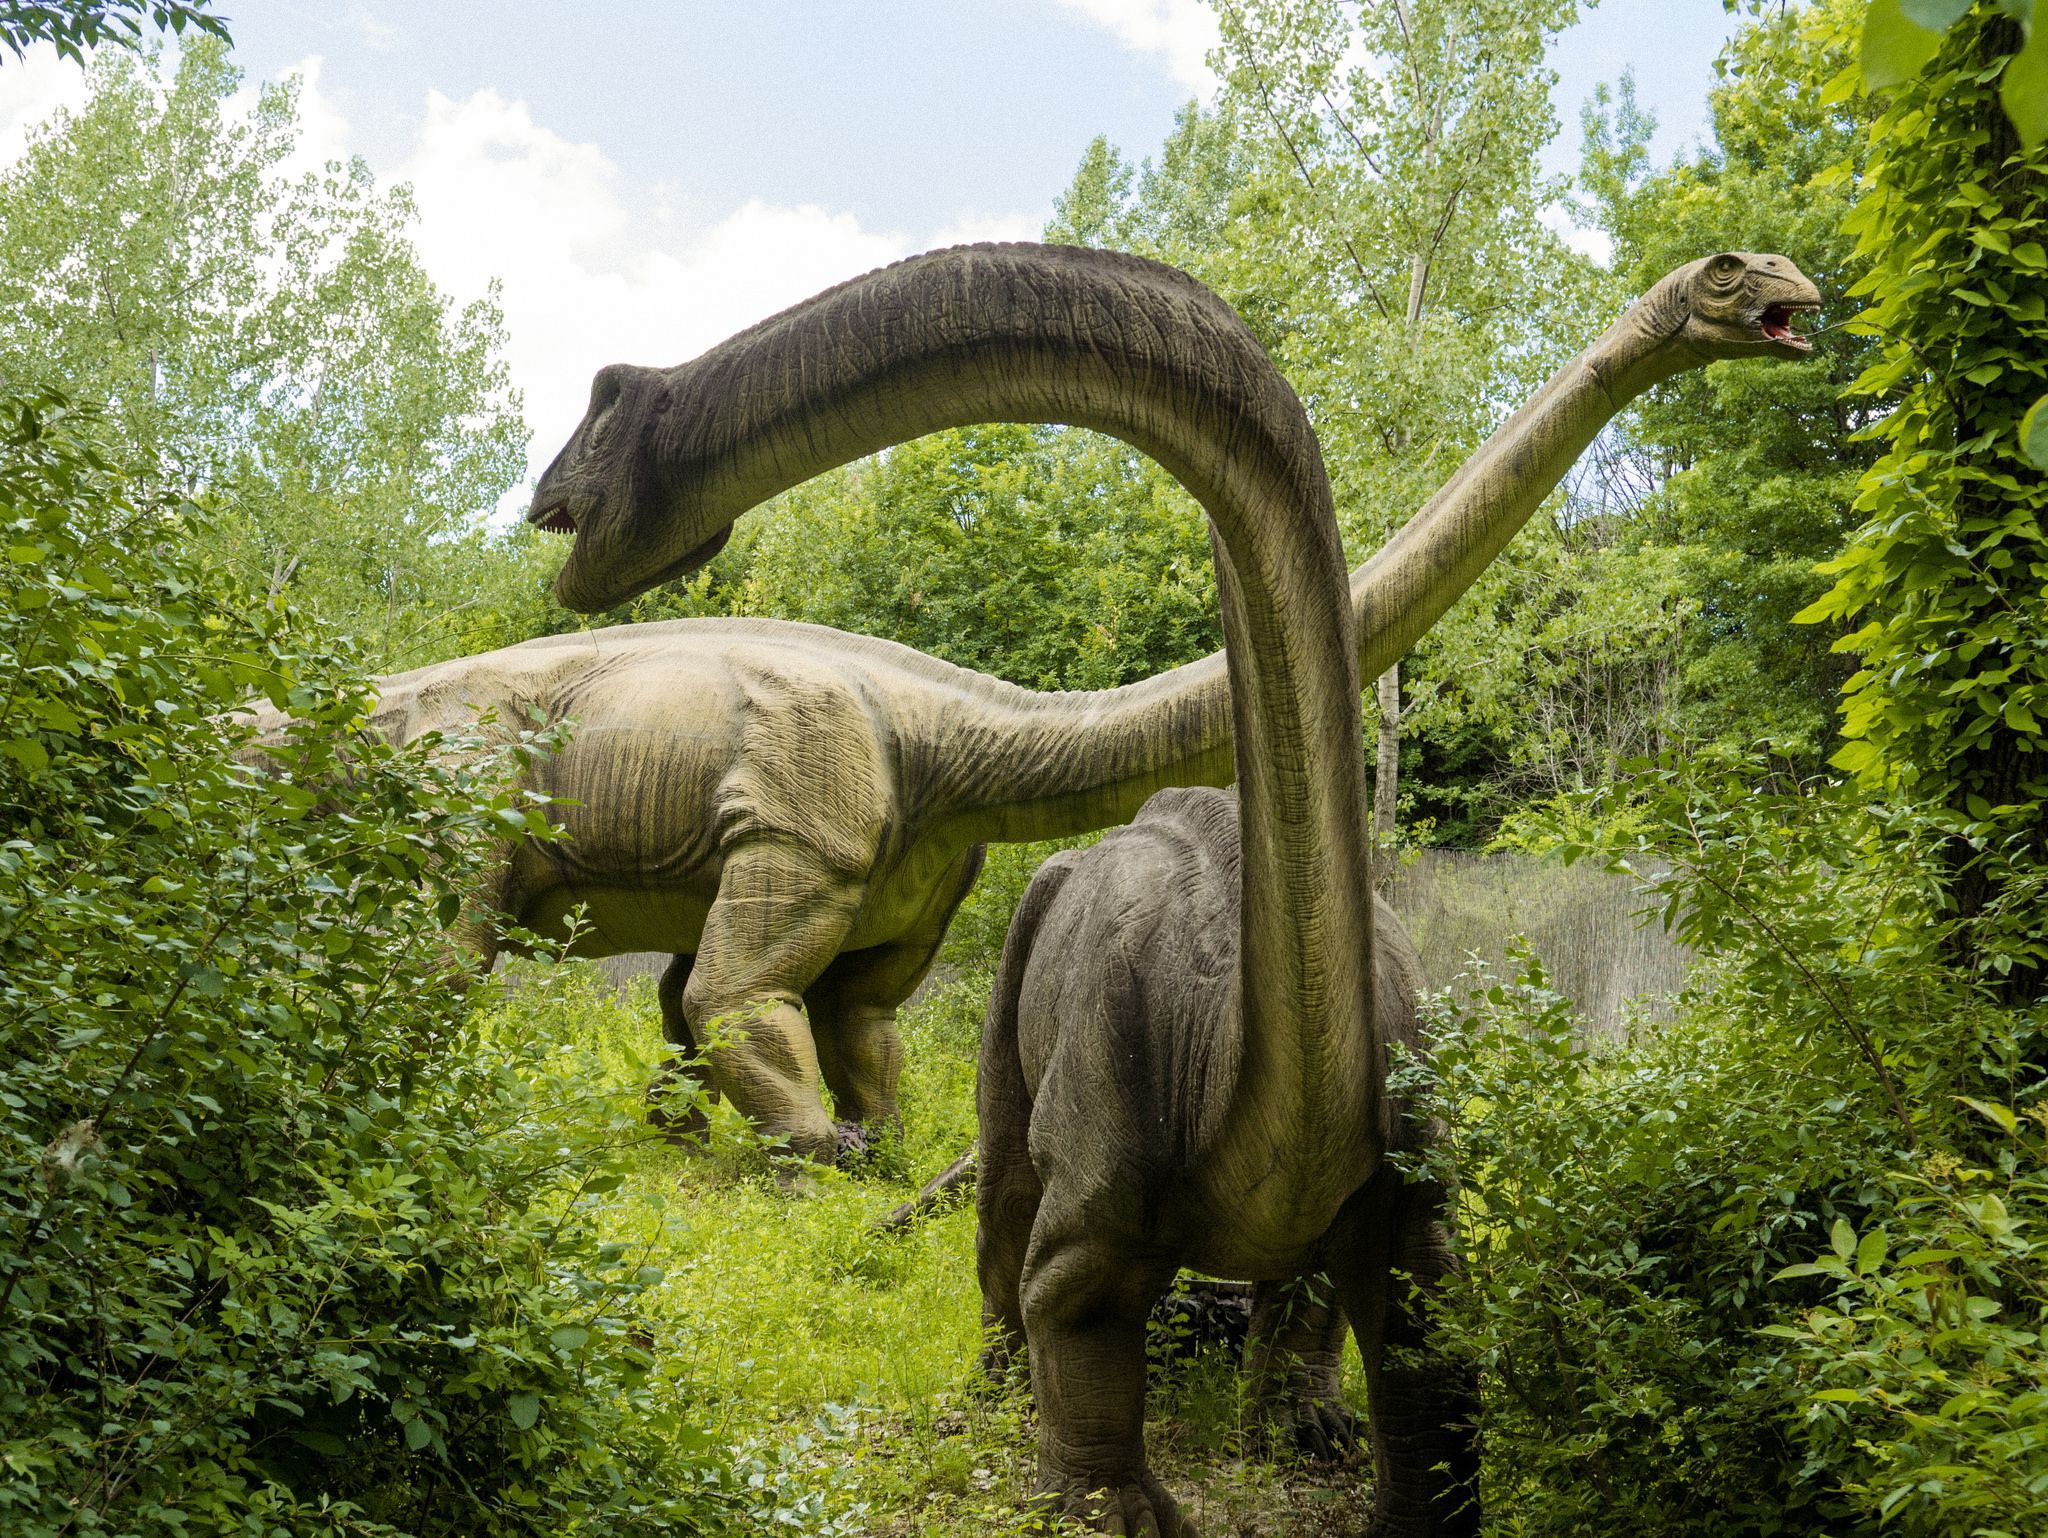 Field Station Dinosaurs Is The Best Family Attraction In New